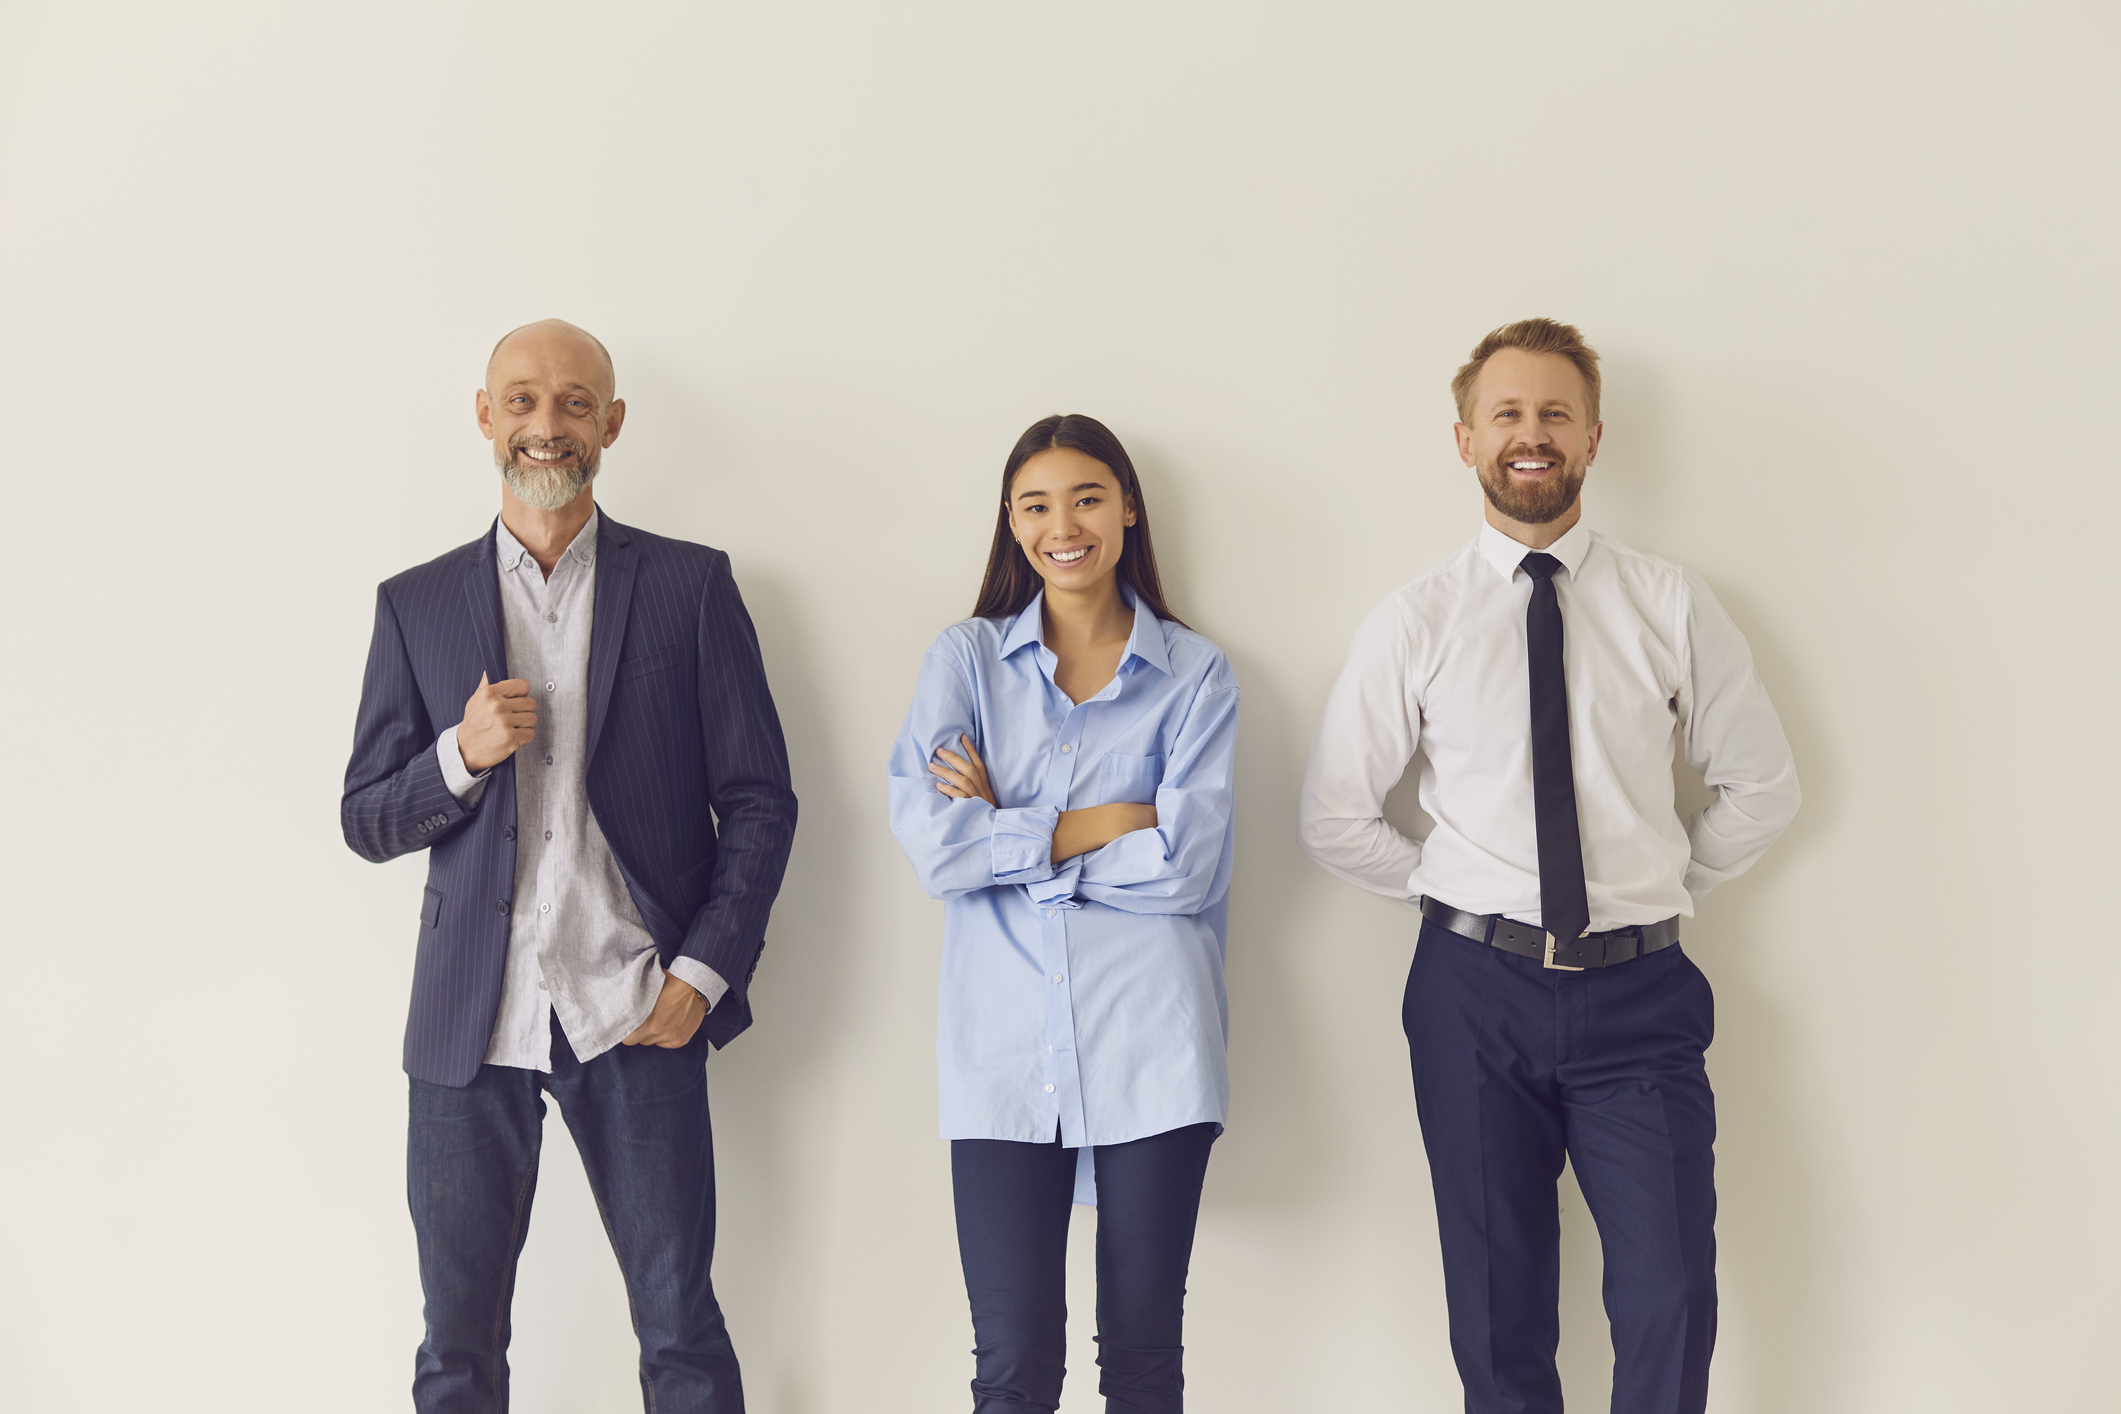 Three business people smiling; each one part of a different generation